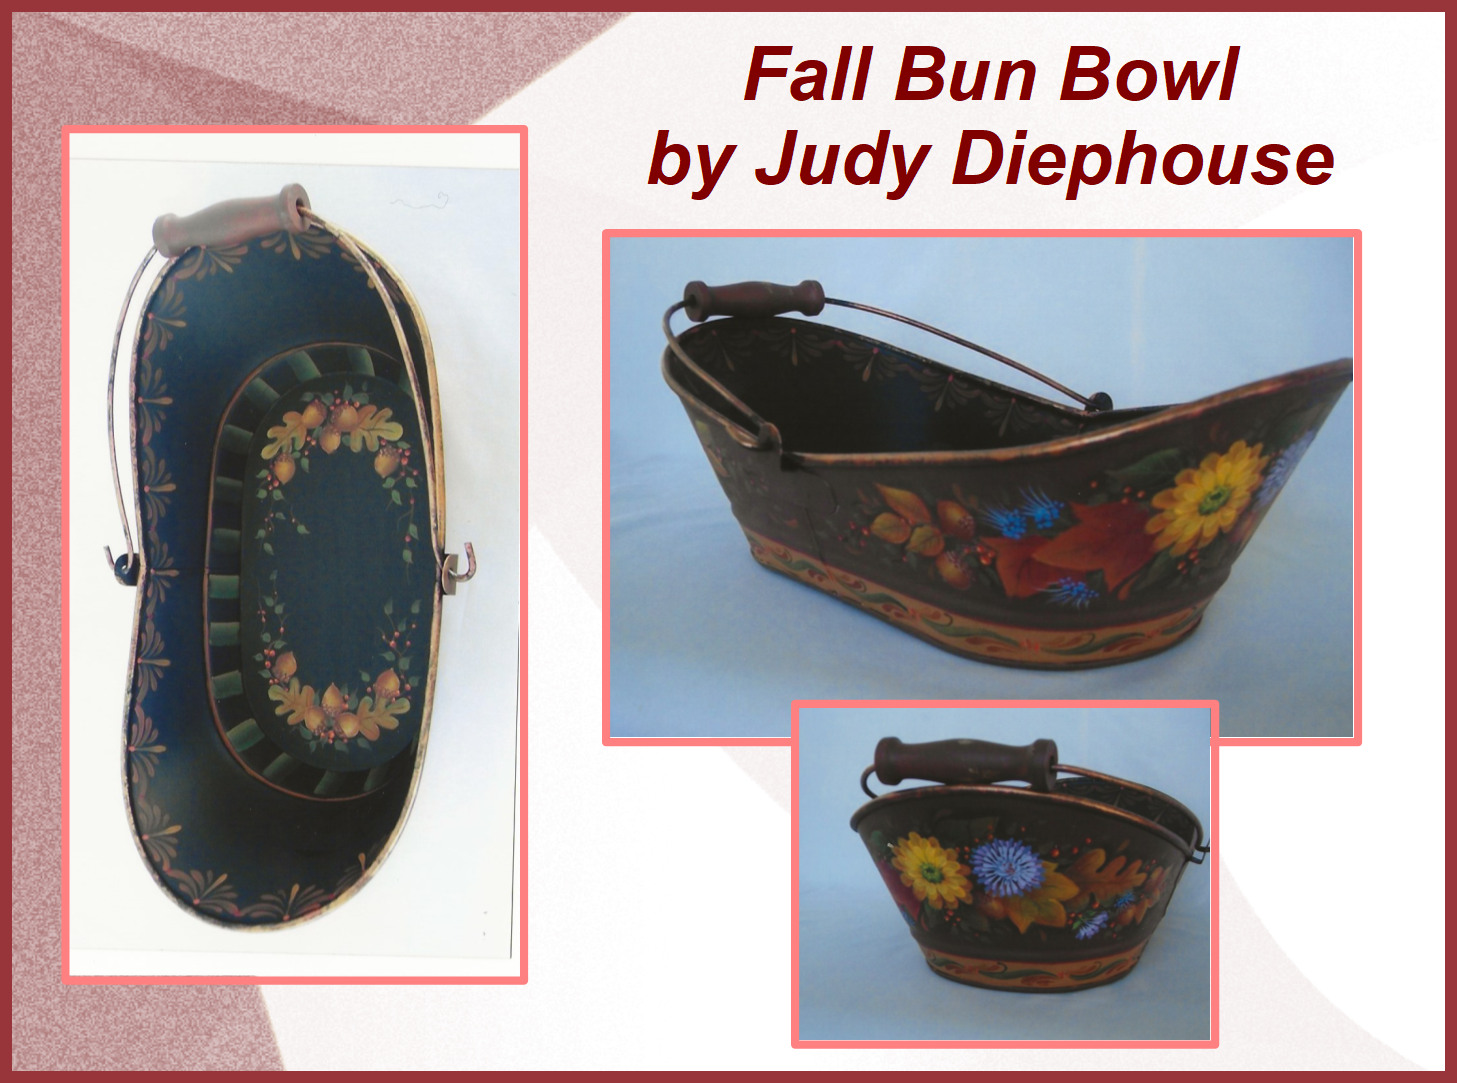 fall-bun-bowl-collage-2.jpg